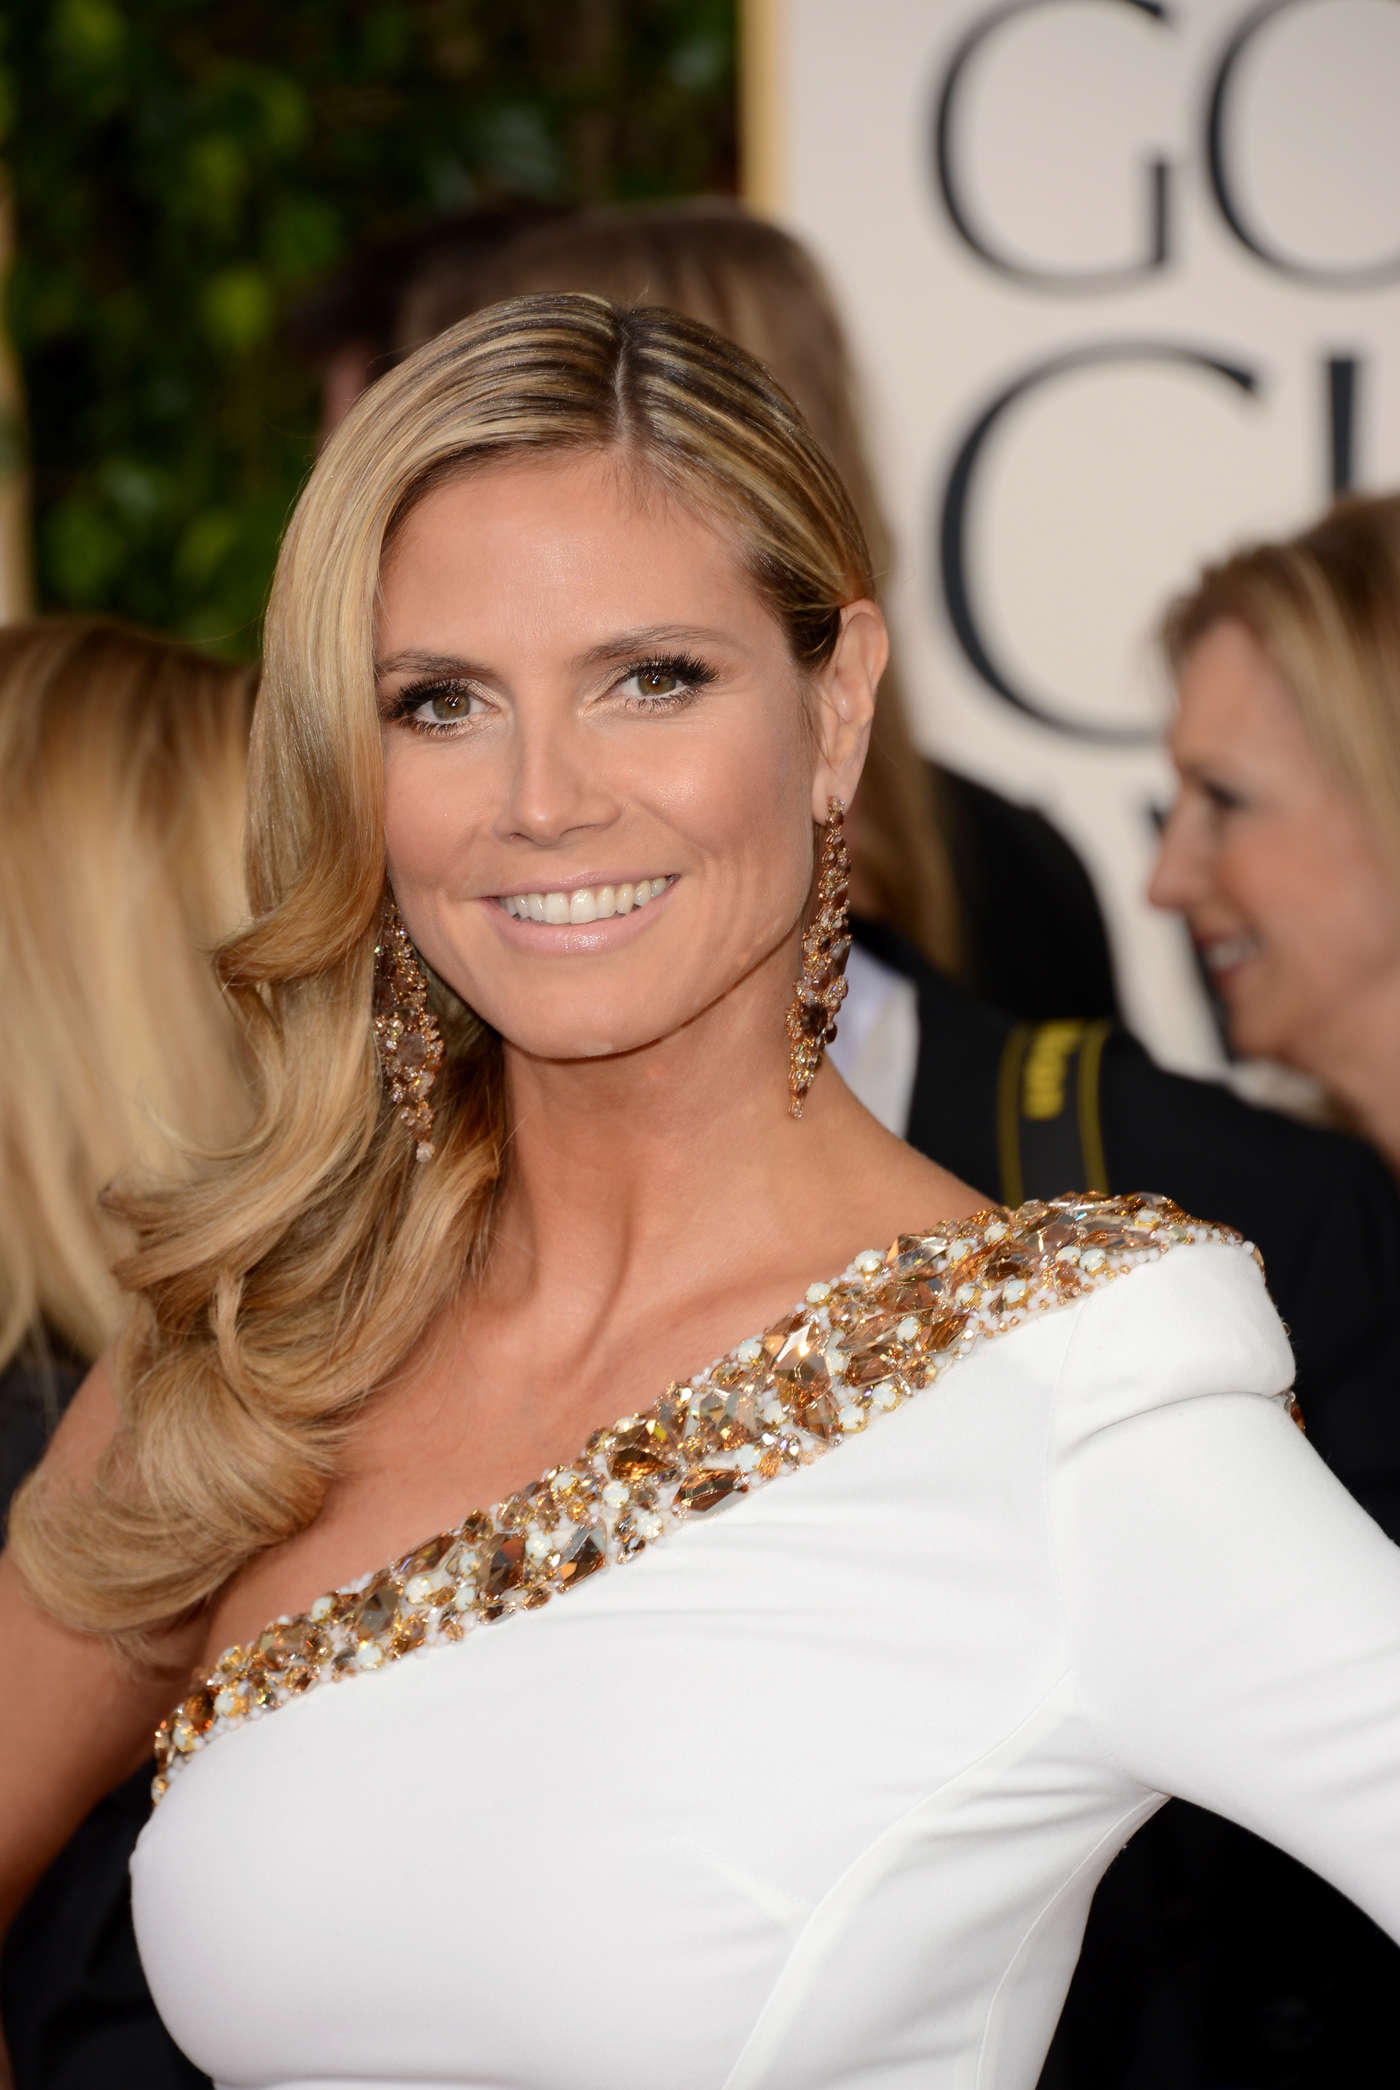 Heidi Klum Breasts implants